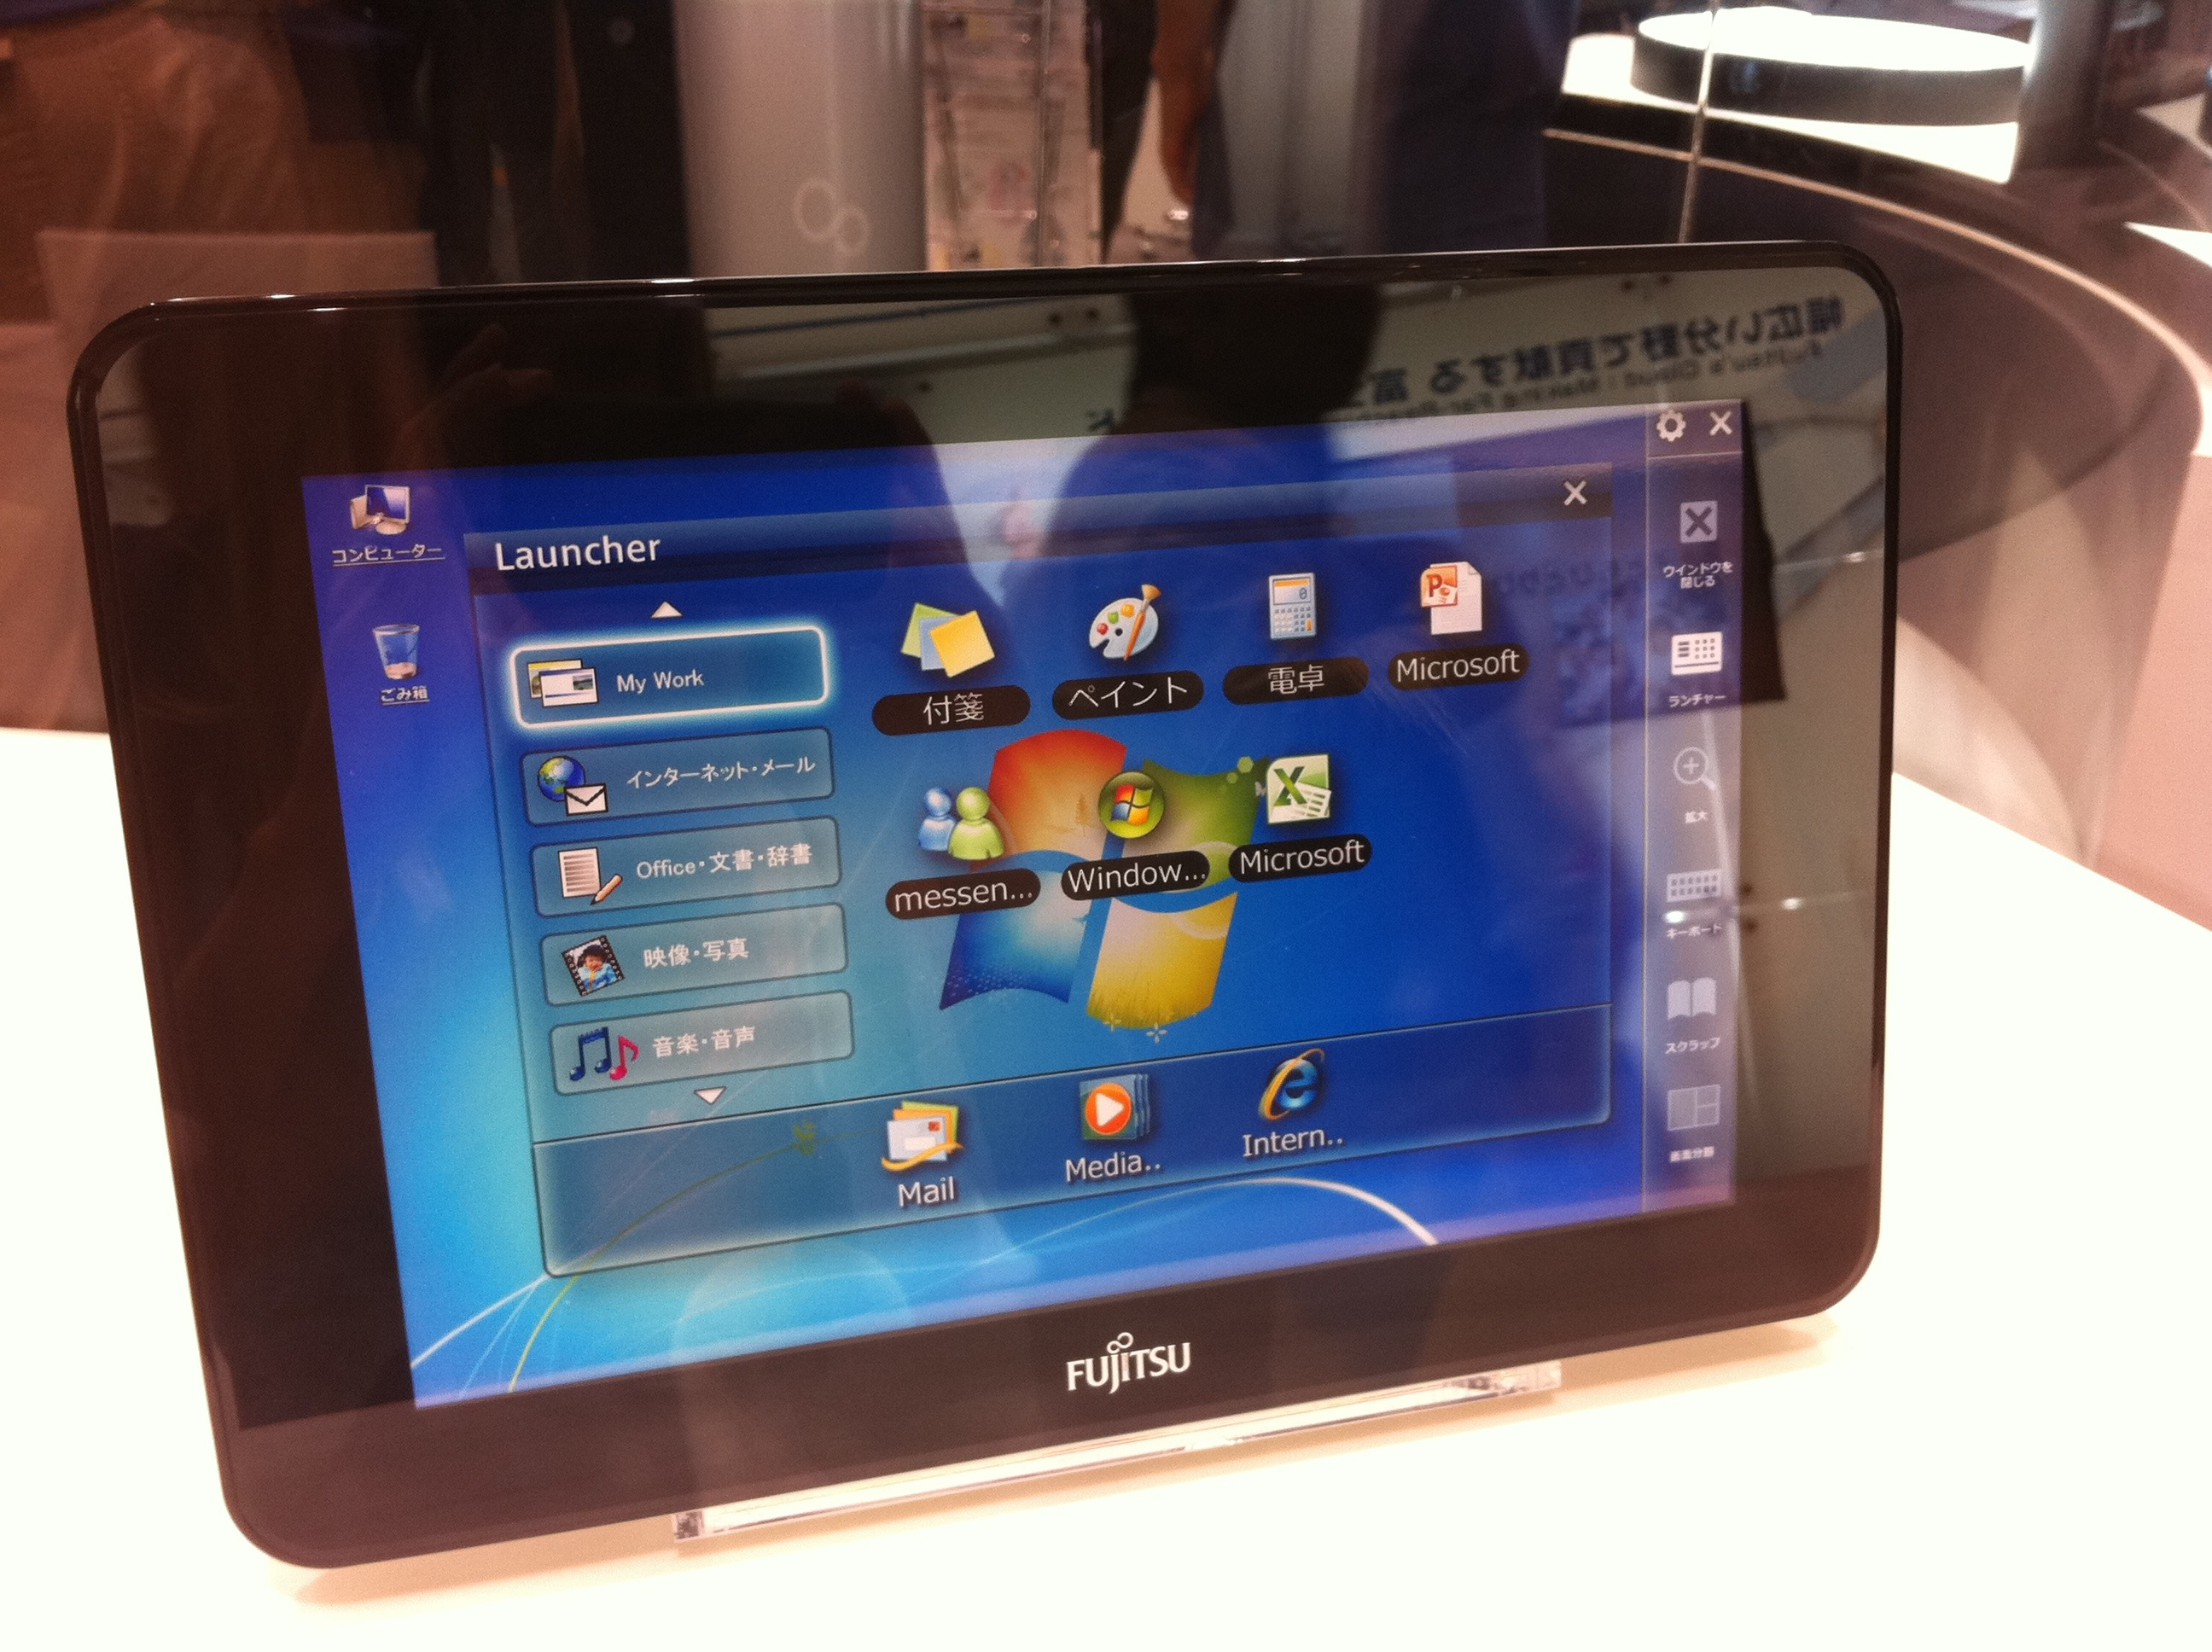 The 10-inch Windows-based tablet from Fujitsu is still firmly in the prototype stage: that's not an actual homescreen, but a static image.